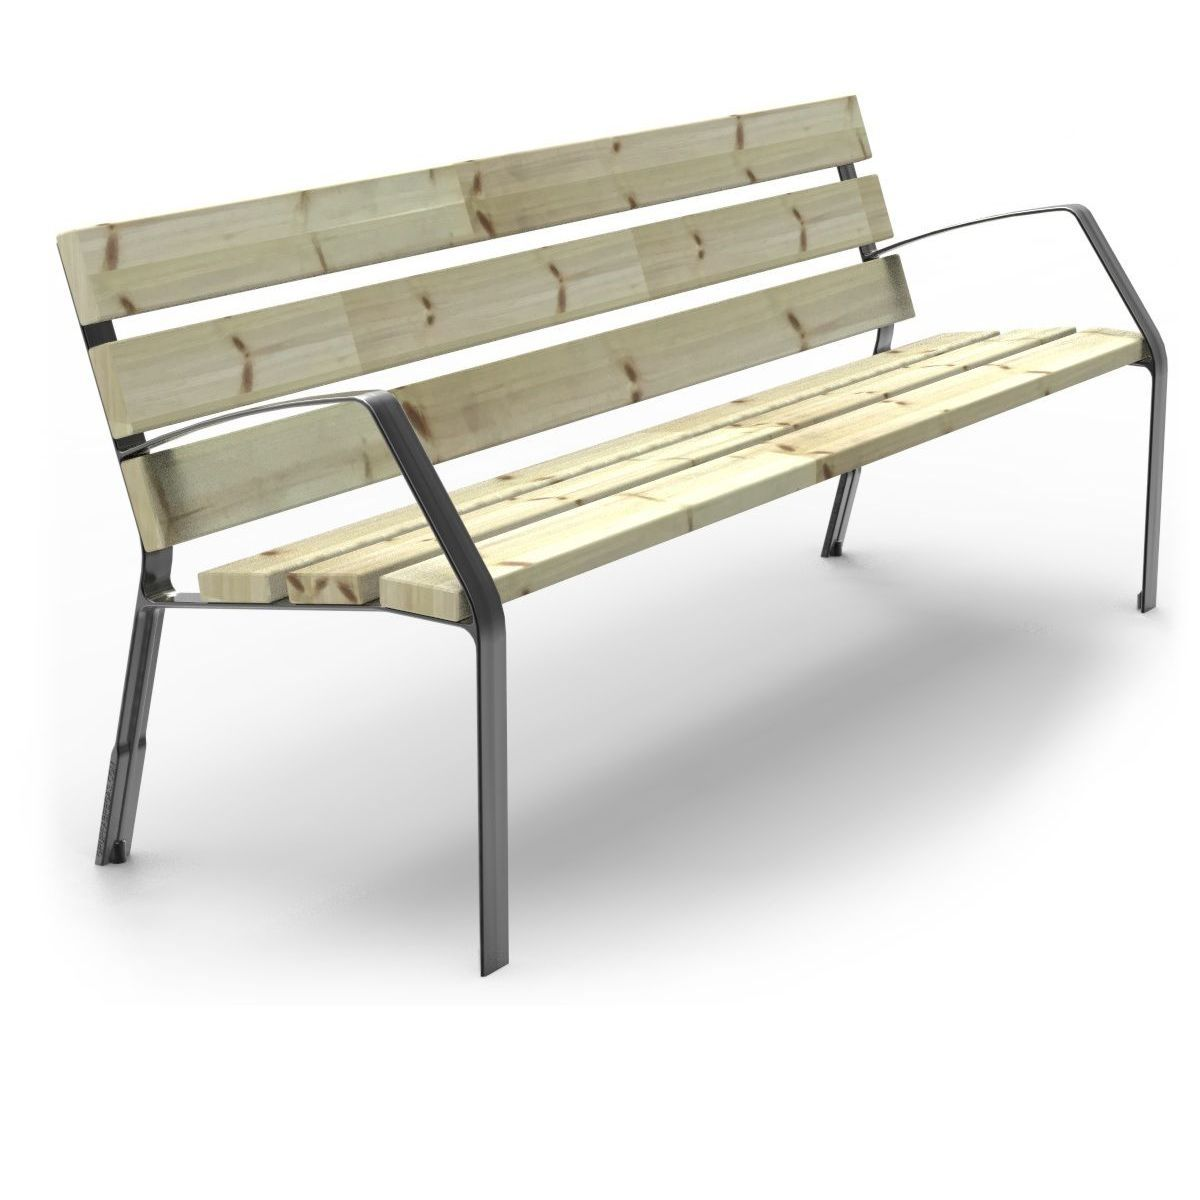 Bench MODO08-1800-PC